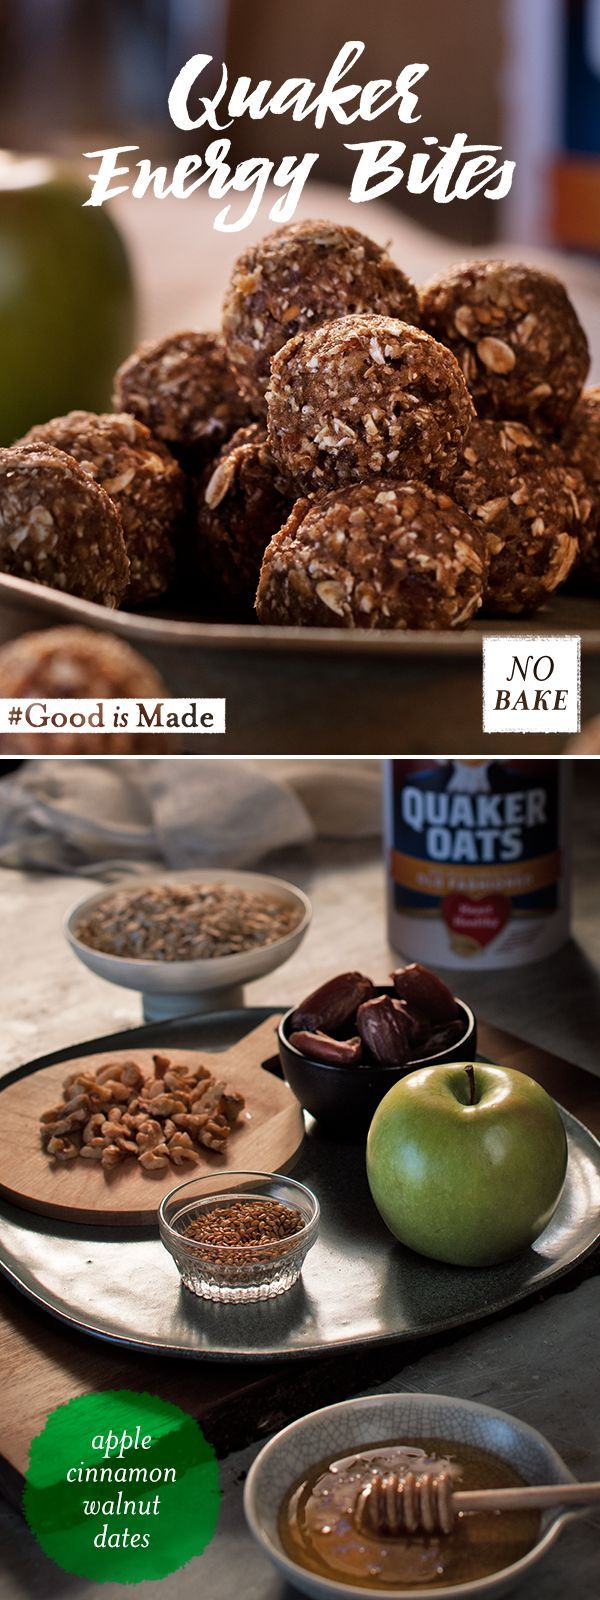 Best 2640 Granolaoats Energy Bites Images On Pinterest Baking Quaker Instant Oatmeal Jar 1 Carton 12 Pcs P An Easy No Bake Snack Thats Full Of Flavor Try Apple